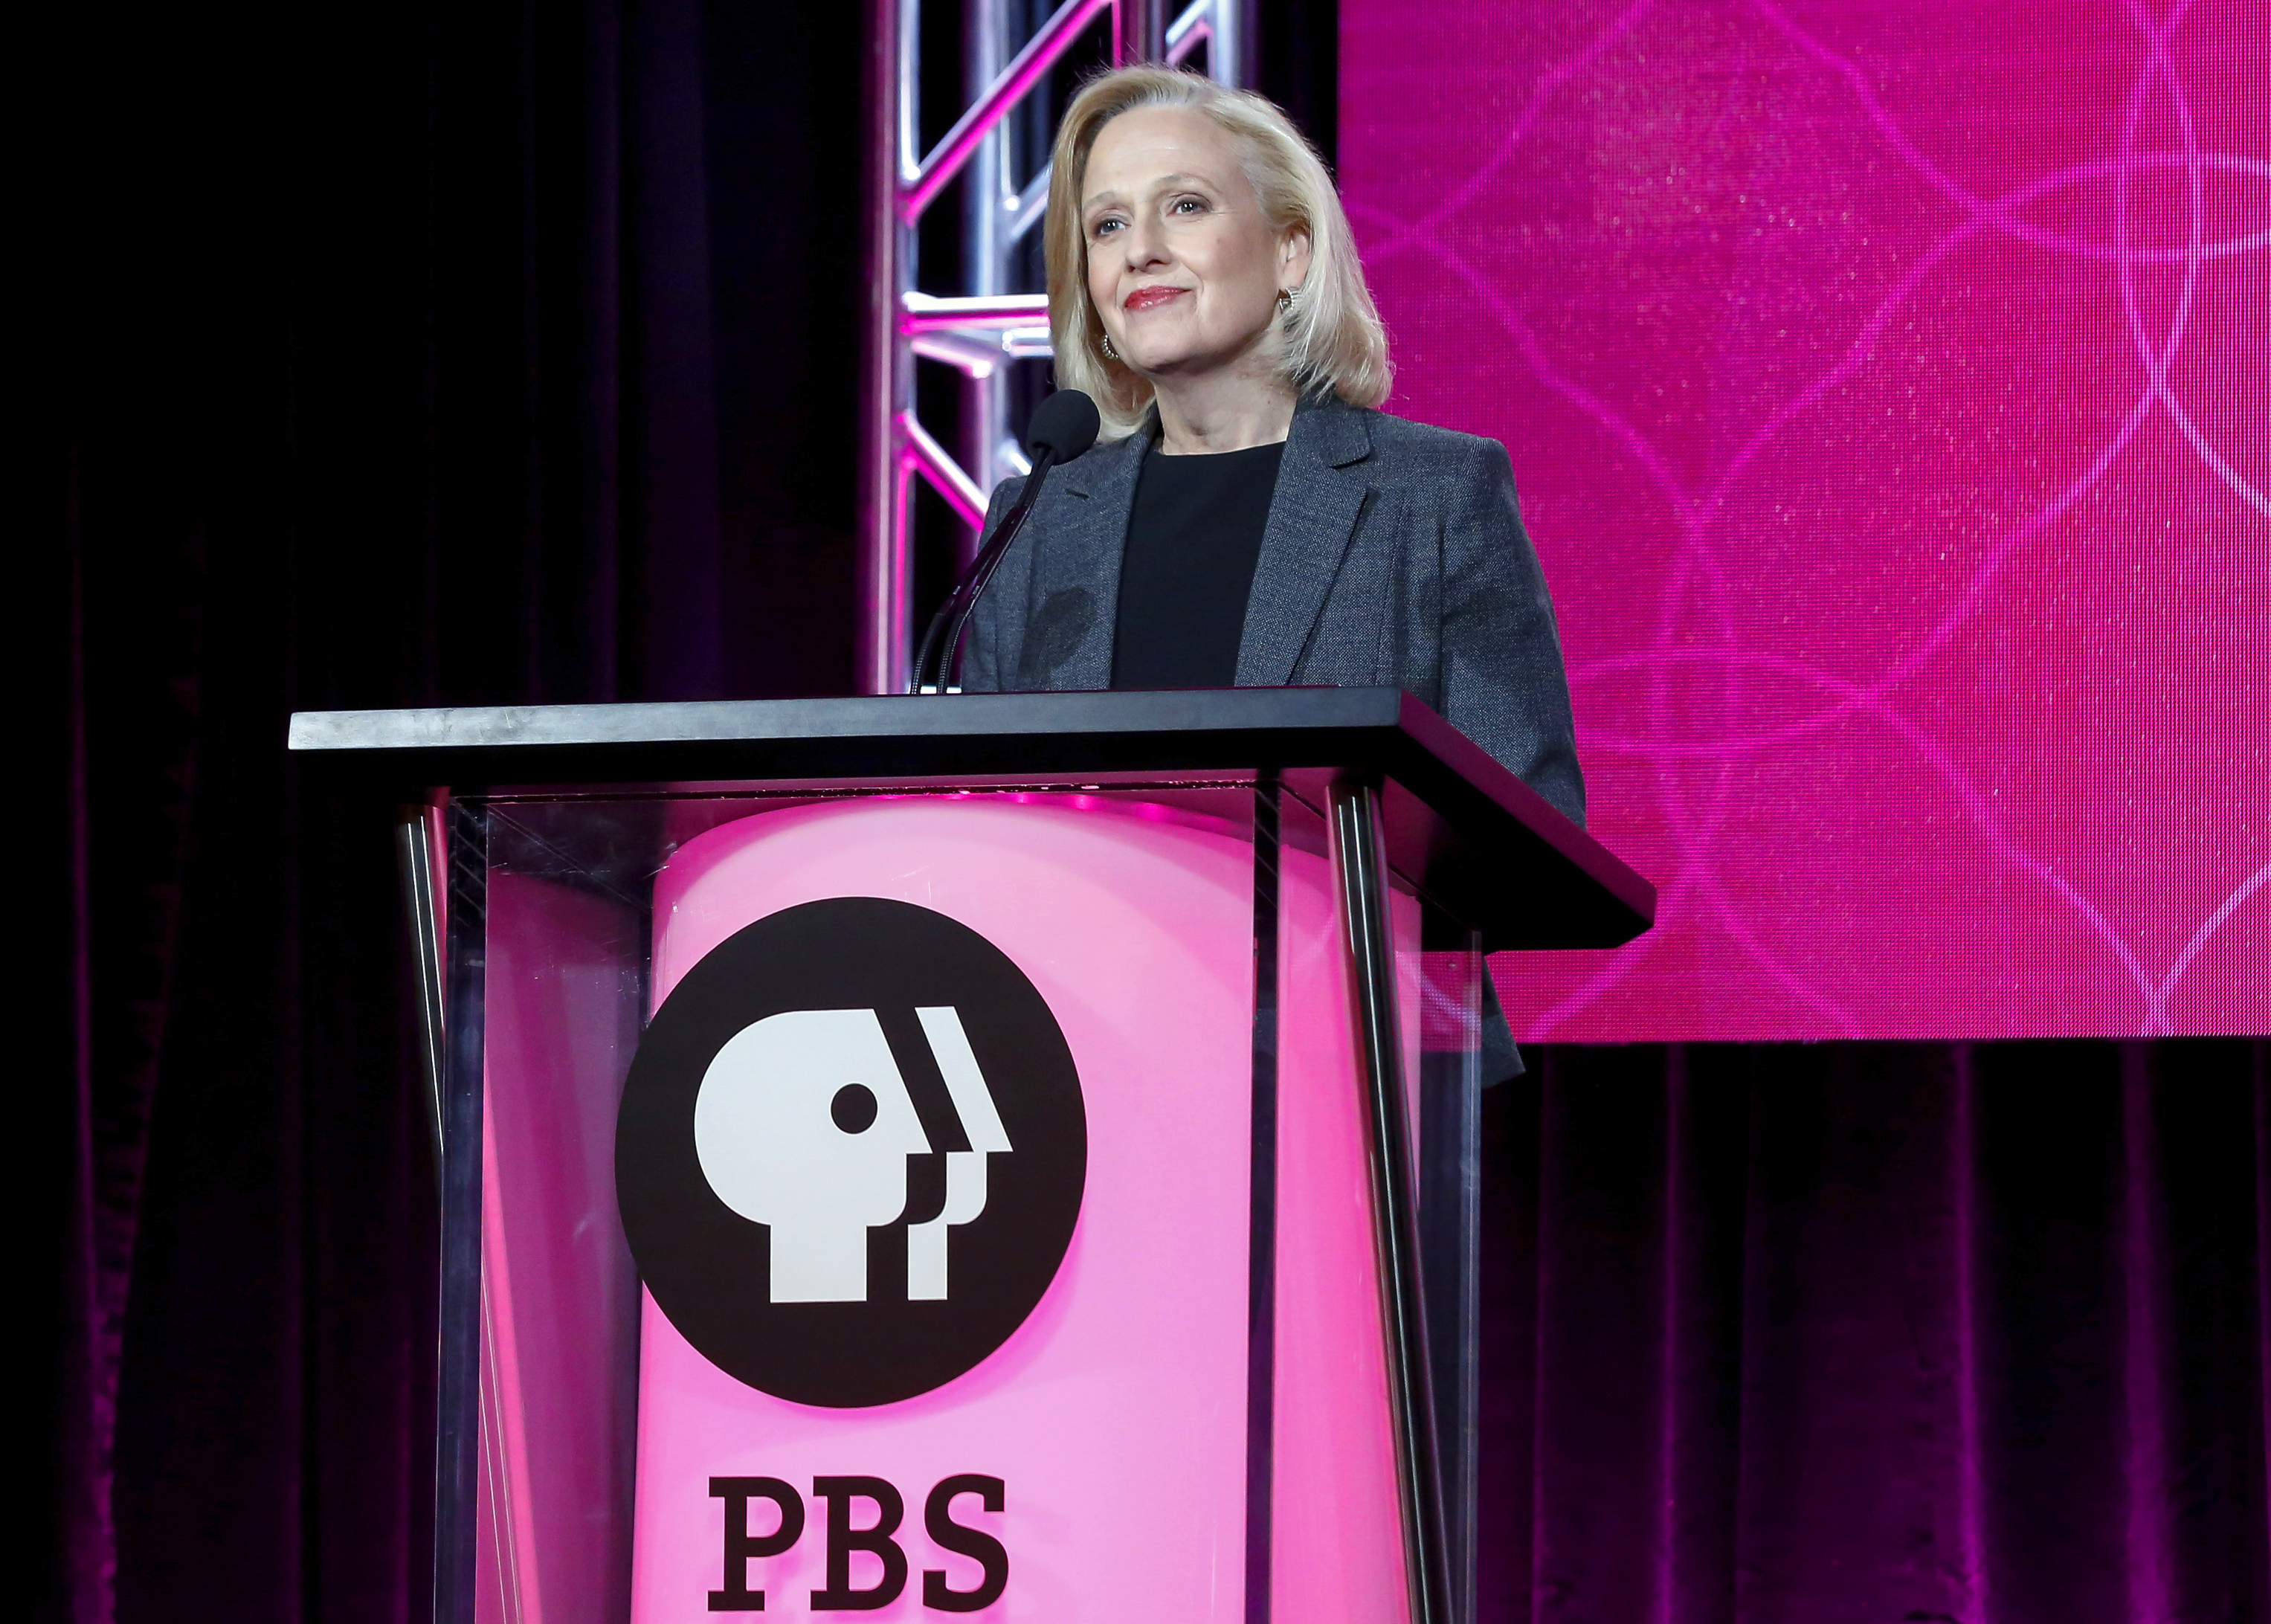 Paula Kerger speaks at the PBS's Executive Session at the 2017 Television Critics Association press tour in Pasadena, CA, on Jan. 15, 2017.